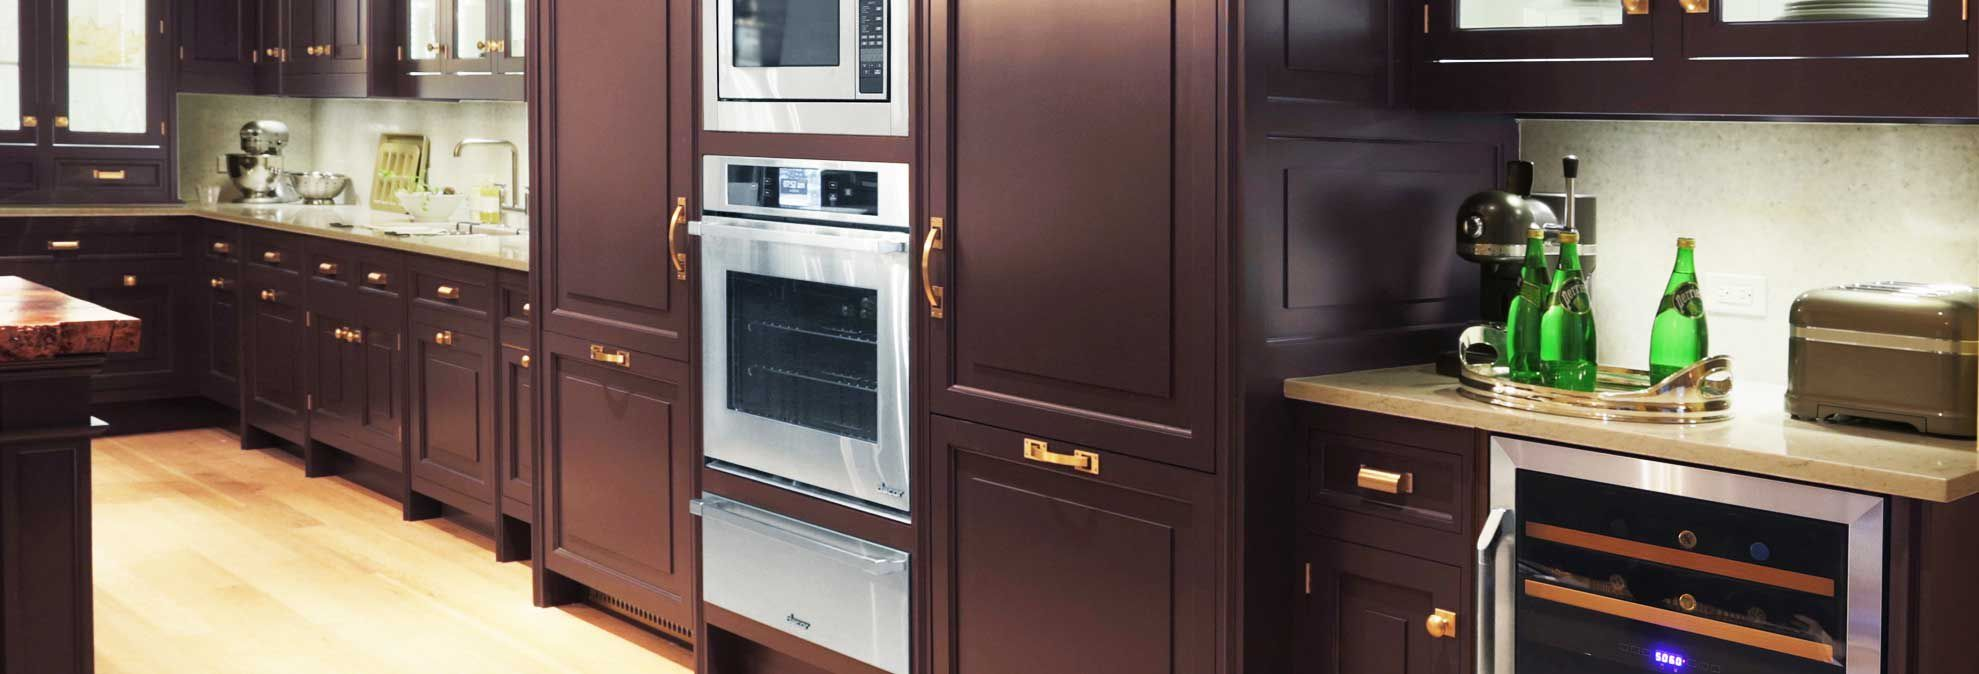 Specifications In 2020 Kitchen Cabinets Wholesale Kitchen Cabinets Discount Kitchen Cabinets